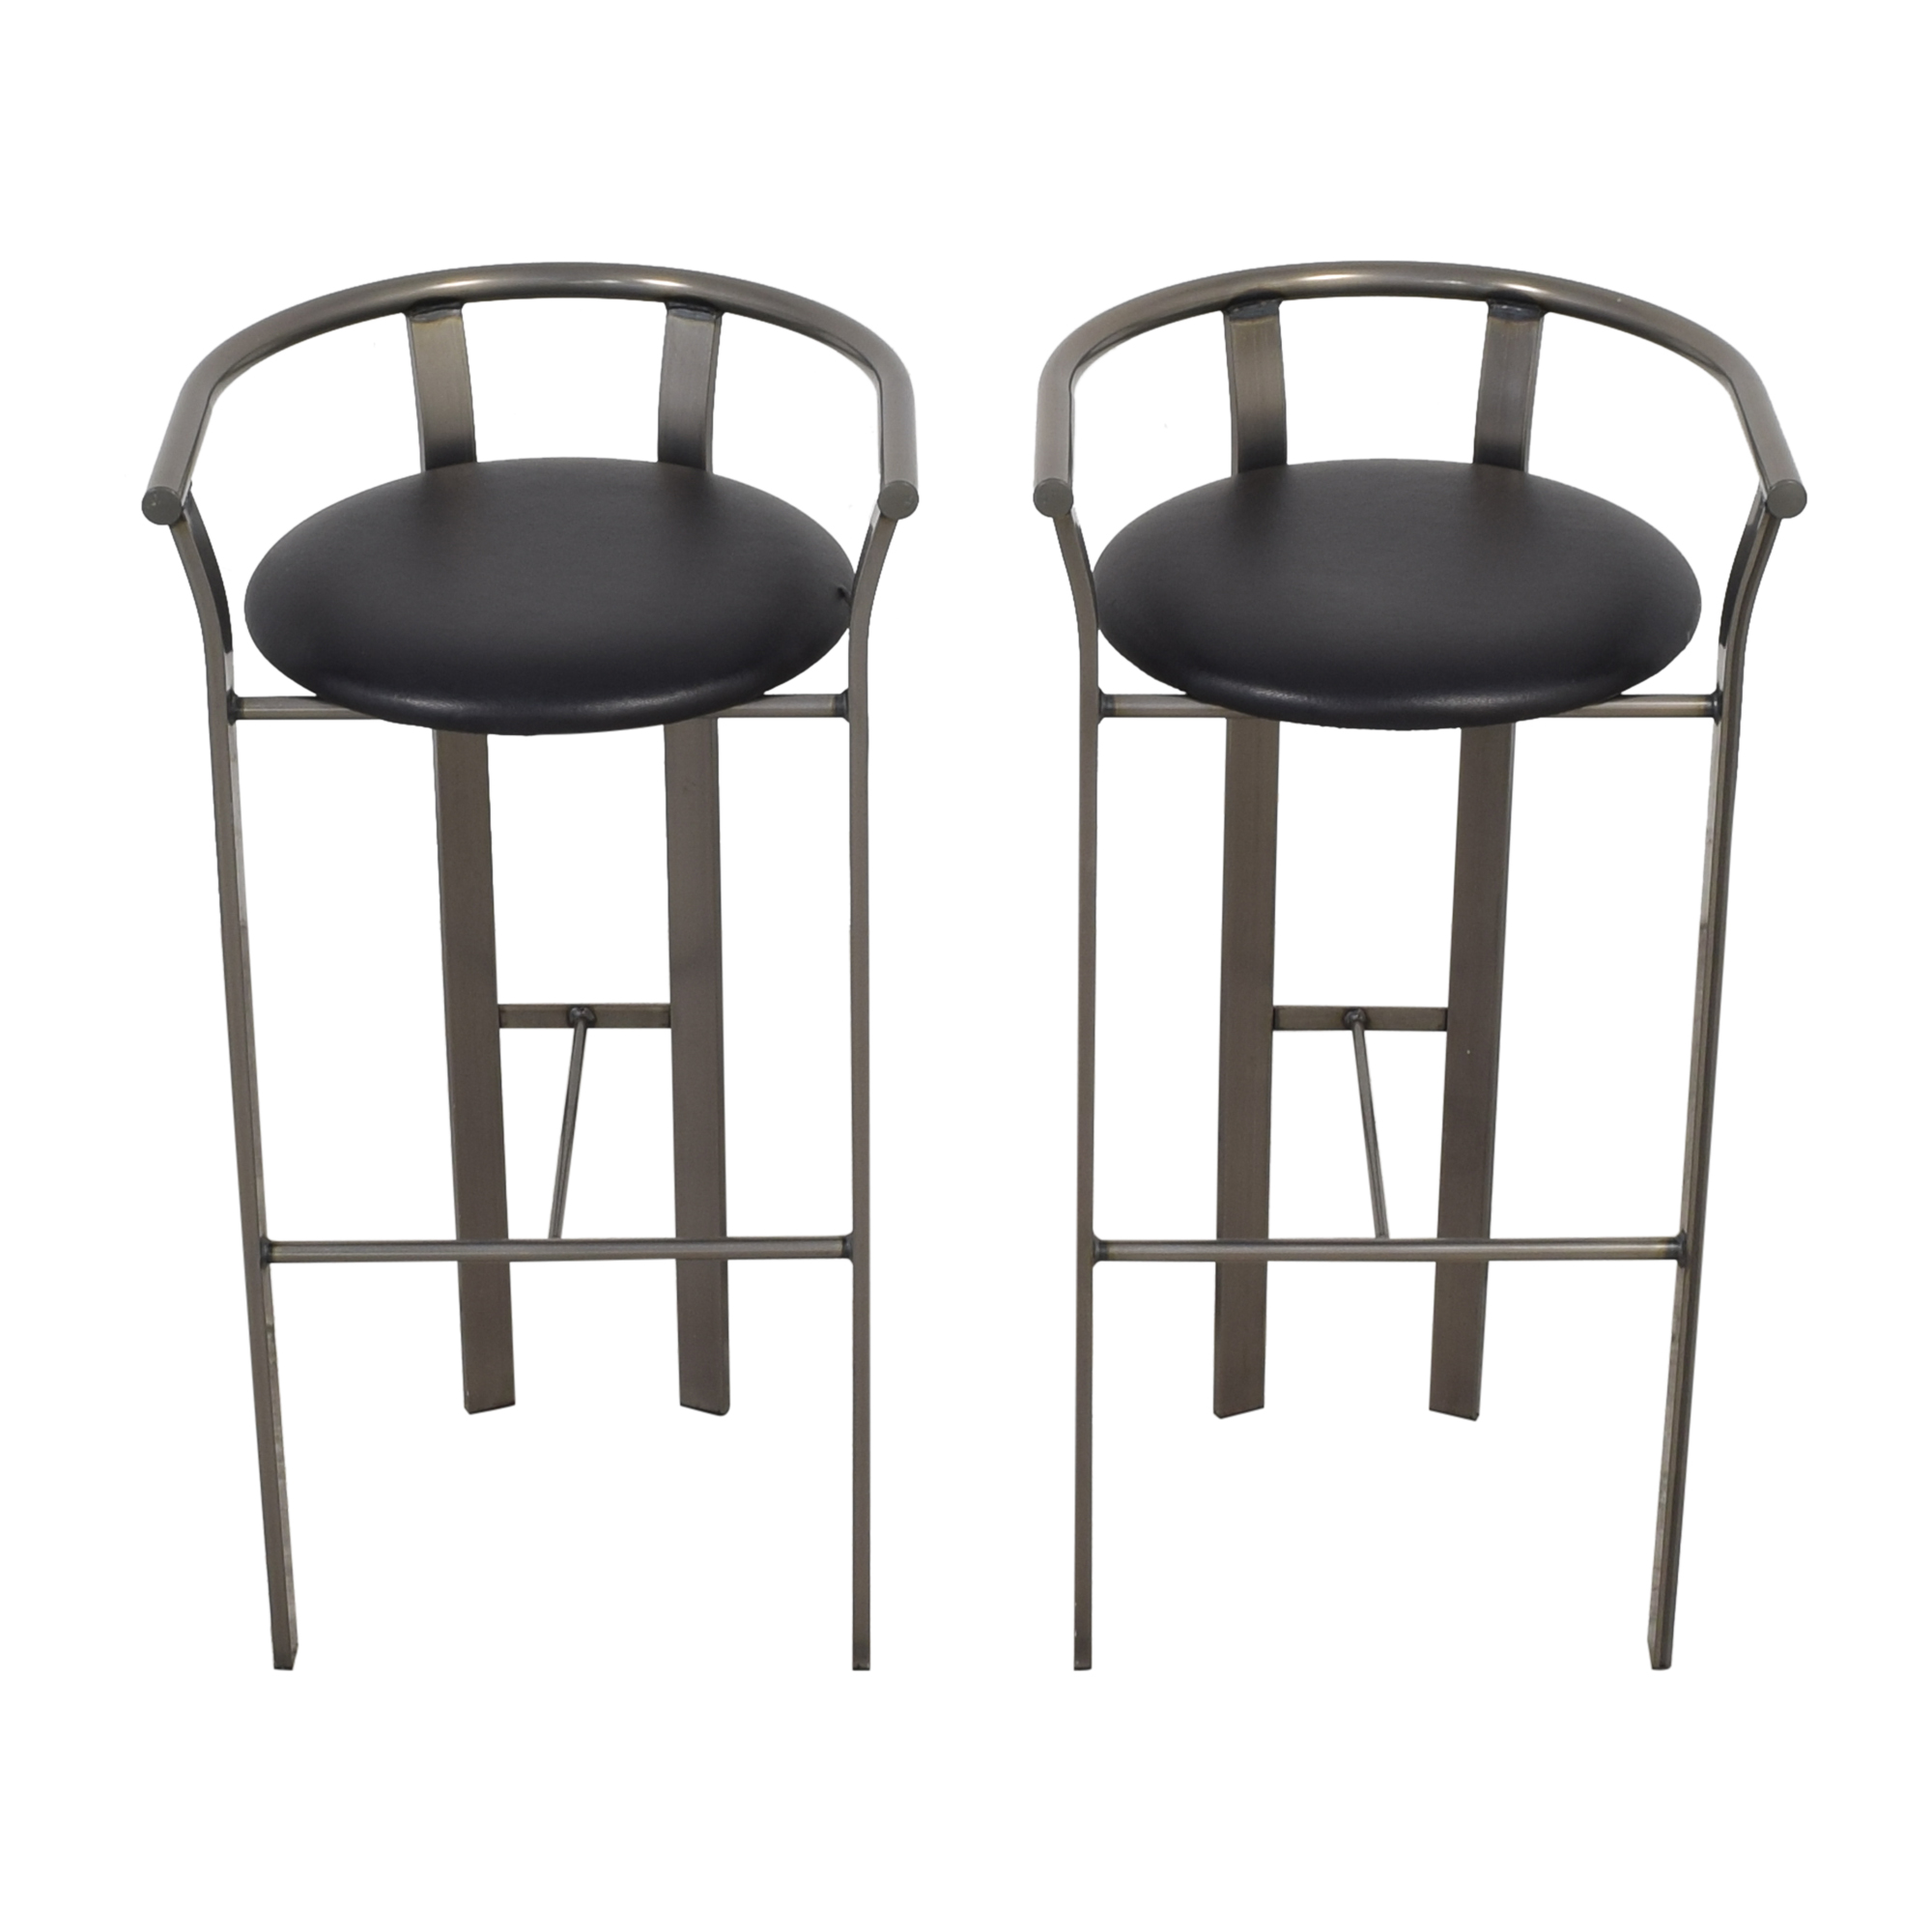 Amisco Amisco Retro Metal & Leather Bar Stools on sale